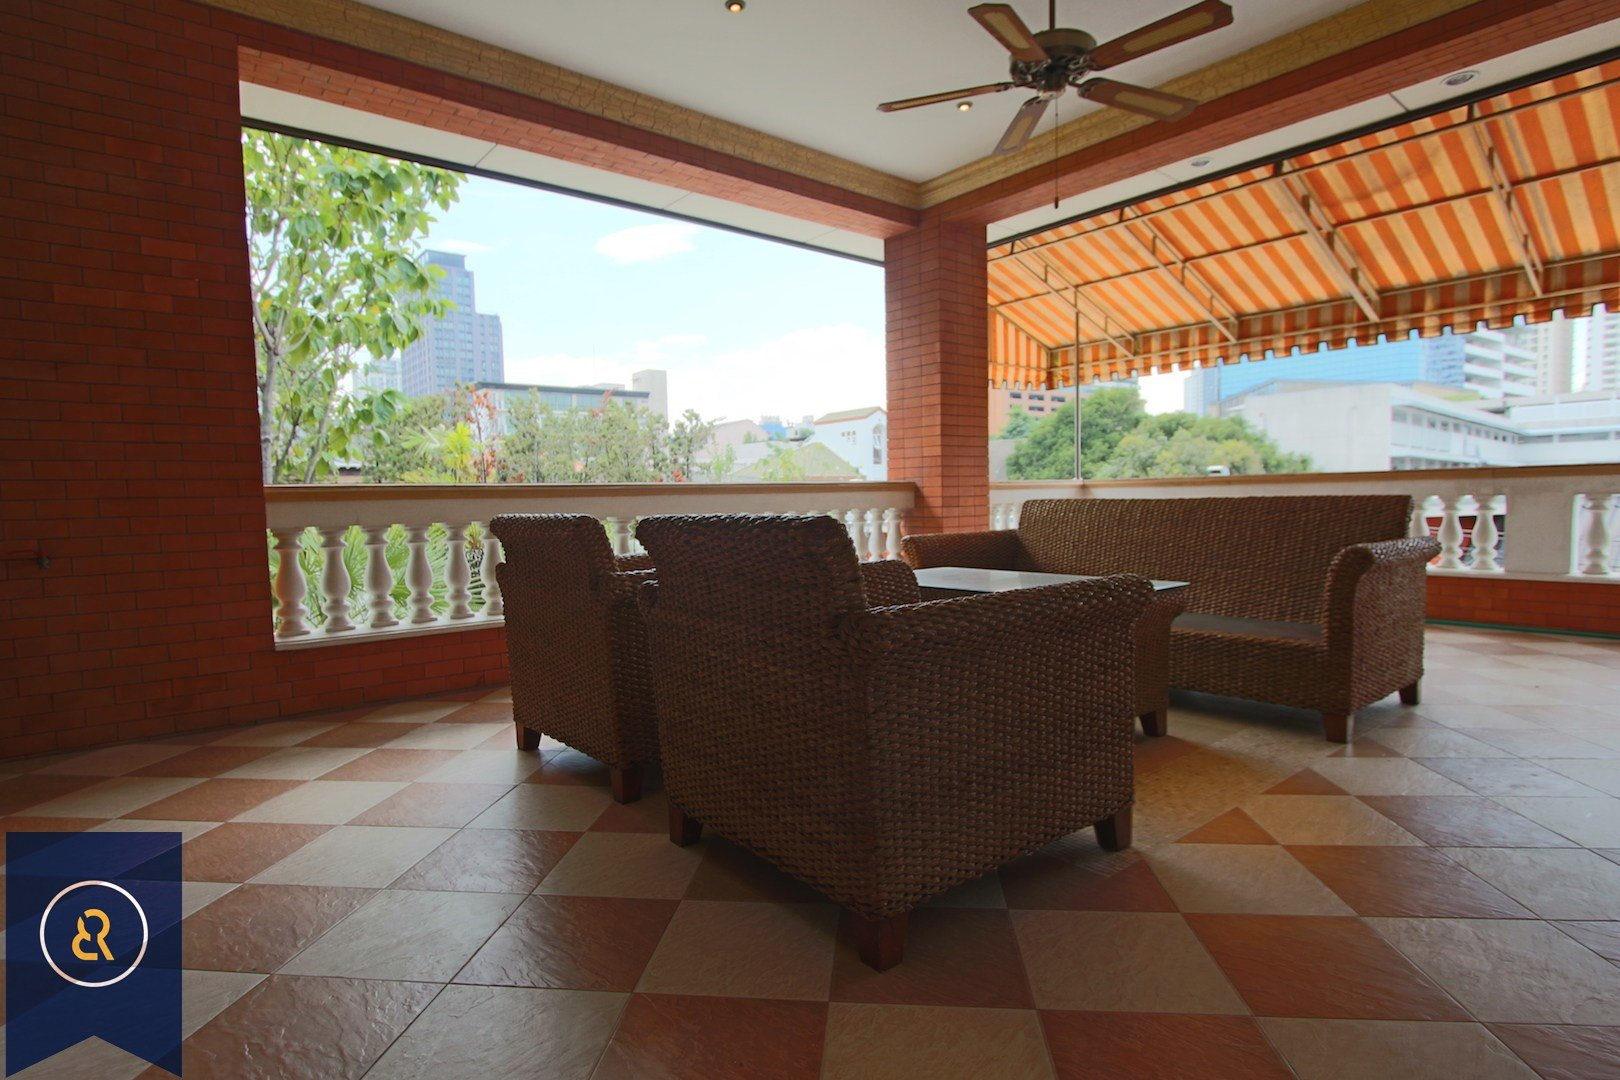 Best Three Bedroom House For Rent In Ekkamai With Private Pool Bowery And Royce Real Estate Agent With Pictures